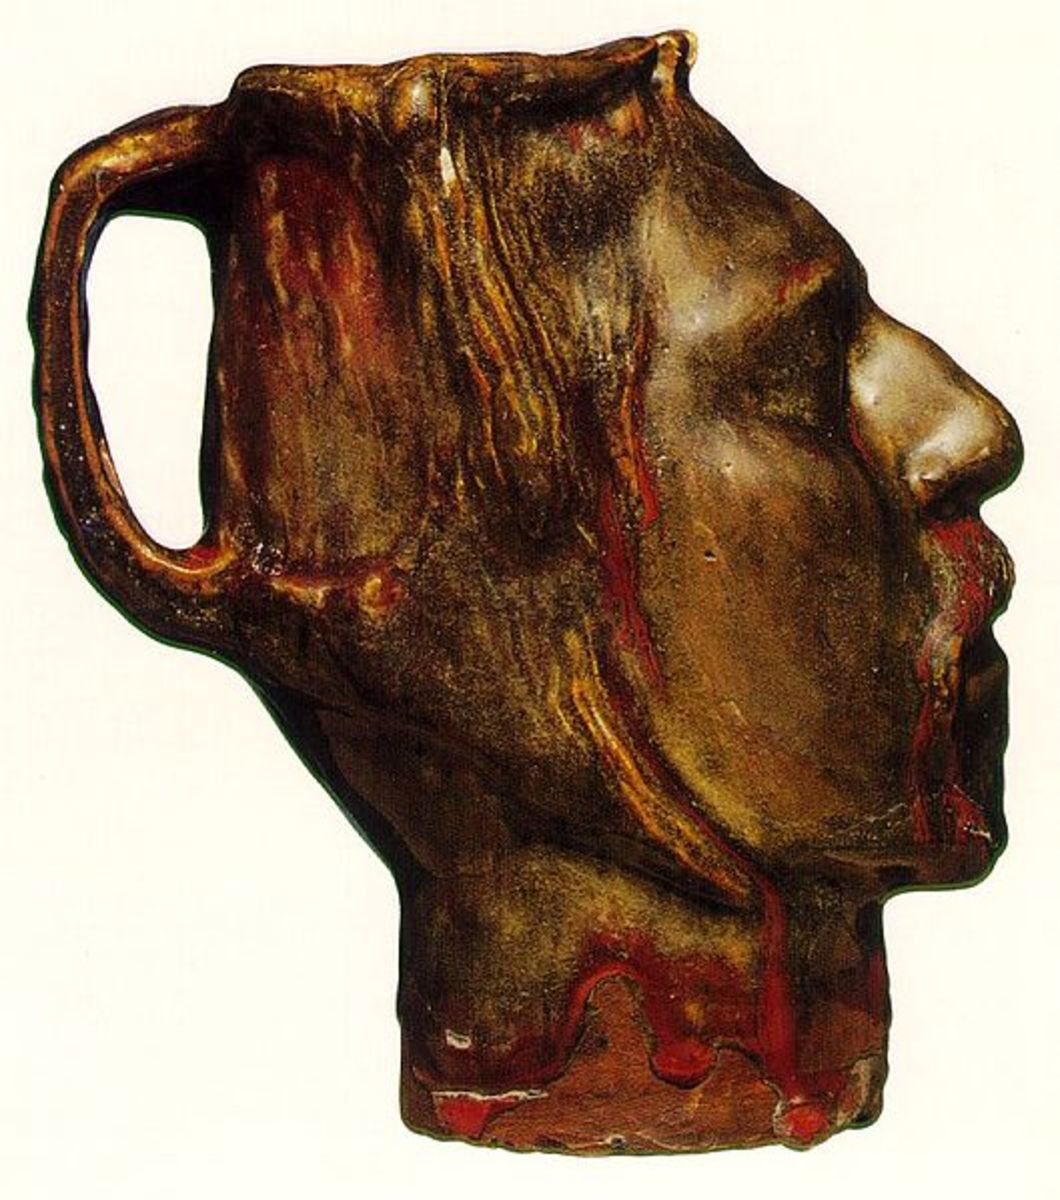 """Paul Gaugin's """"Jug In The Form Of A Head"""" is a classic example of a face mug."""